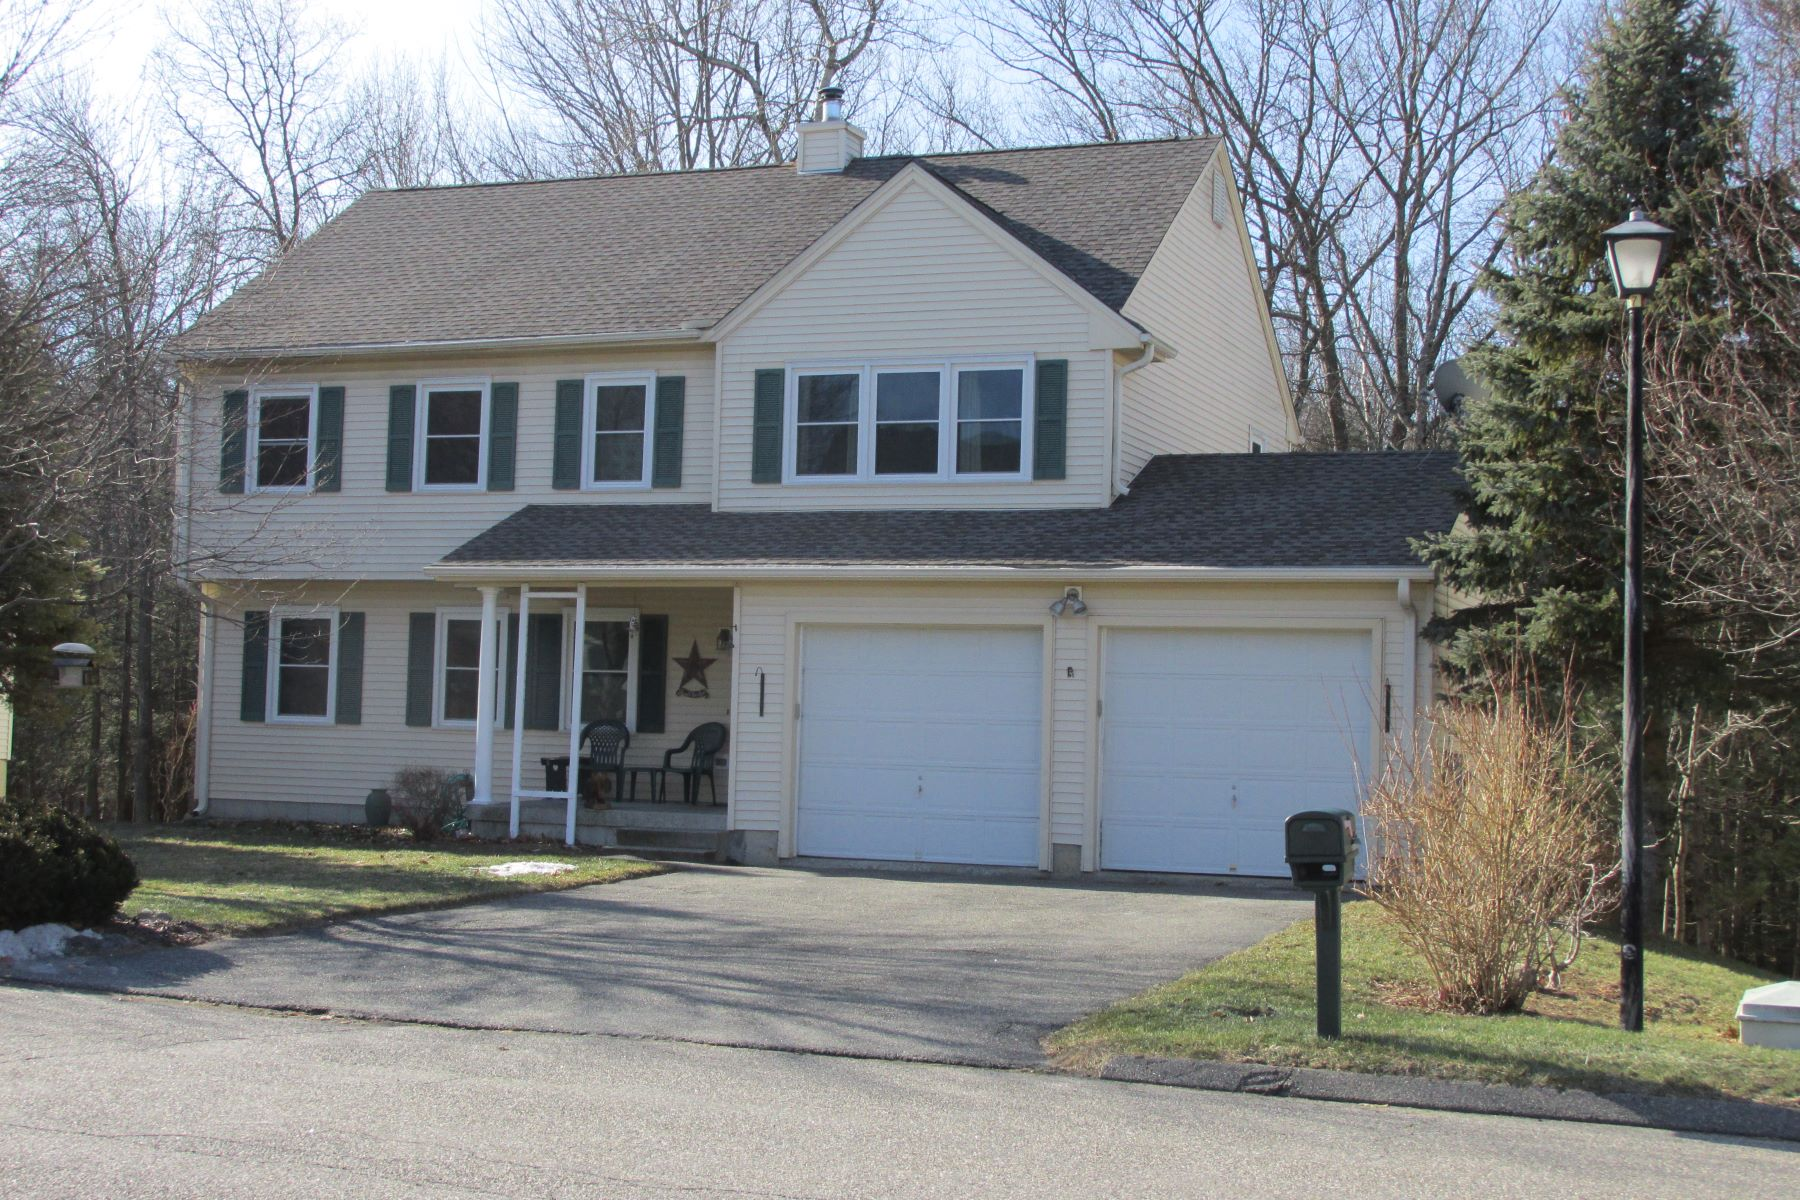 Moradia para Venda às Nicely Maintained and Updated Home 167 Ginger Ln Torrington, Connecticut 06790 Estados Unidos